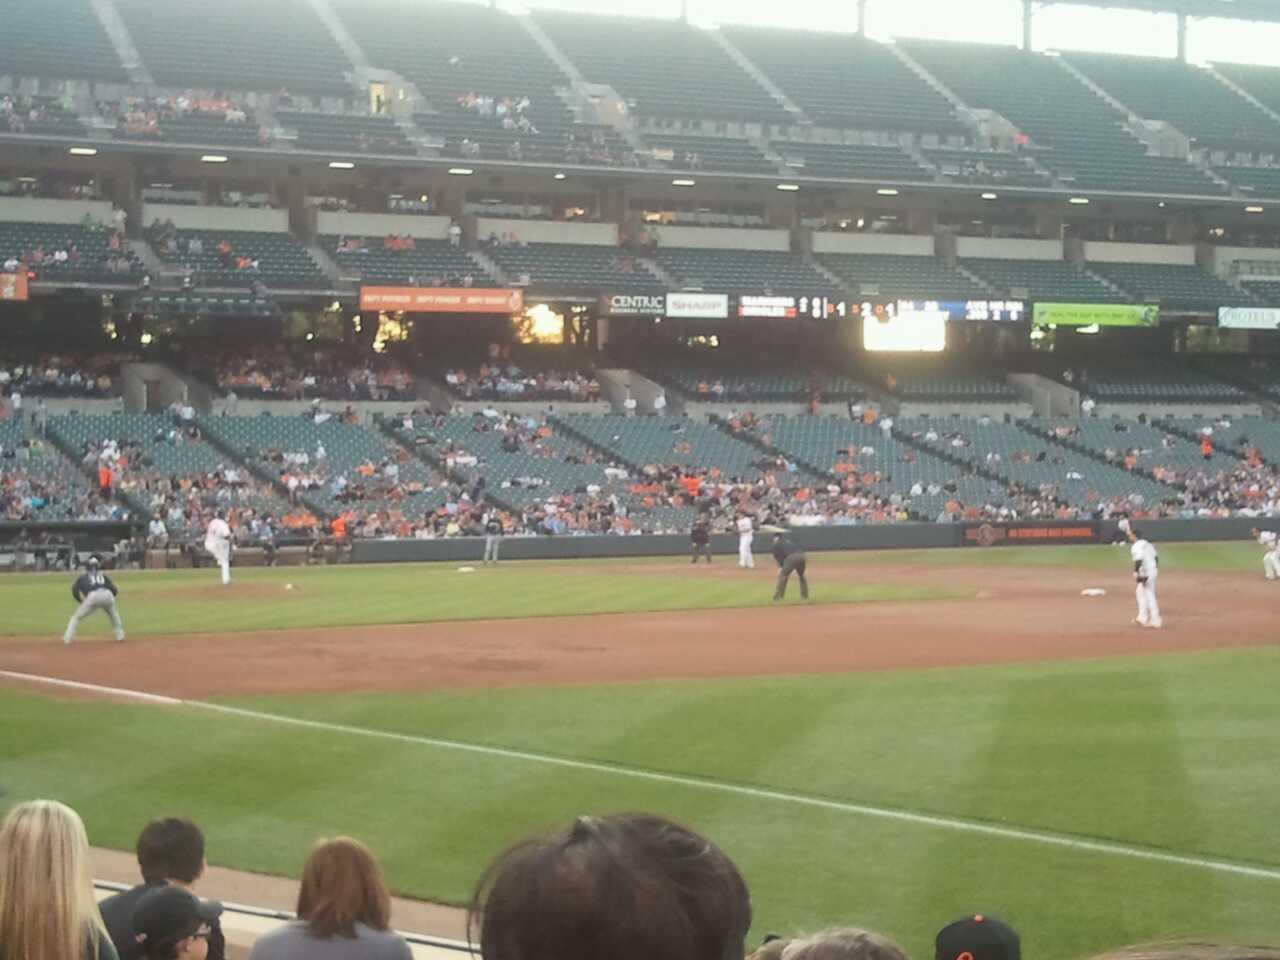 Oriole Park at Camden Yards Section 12 Row 6 Seat 3